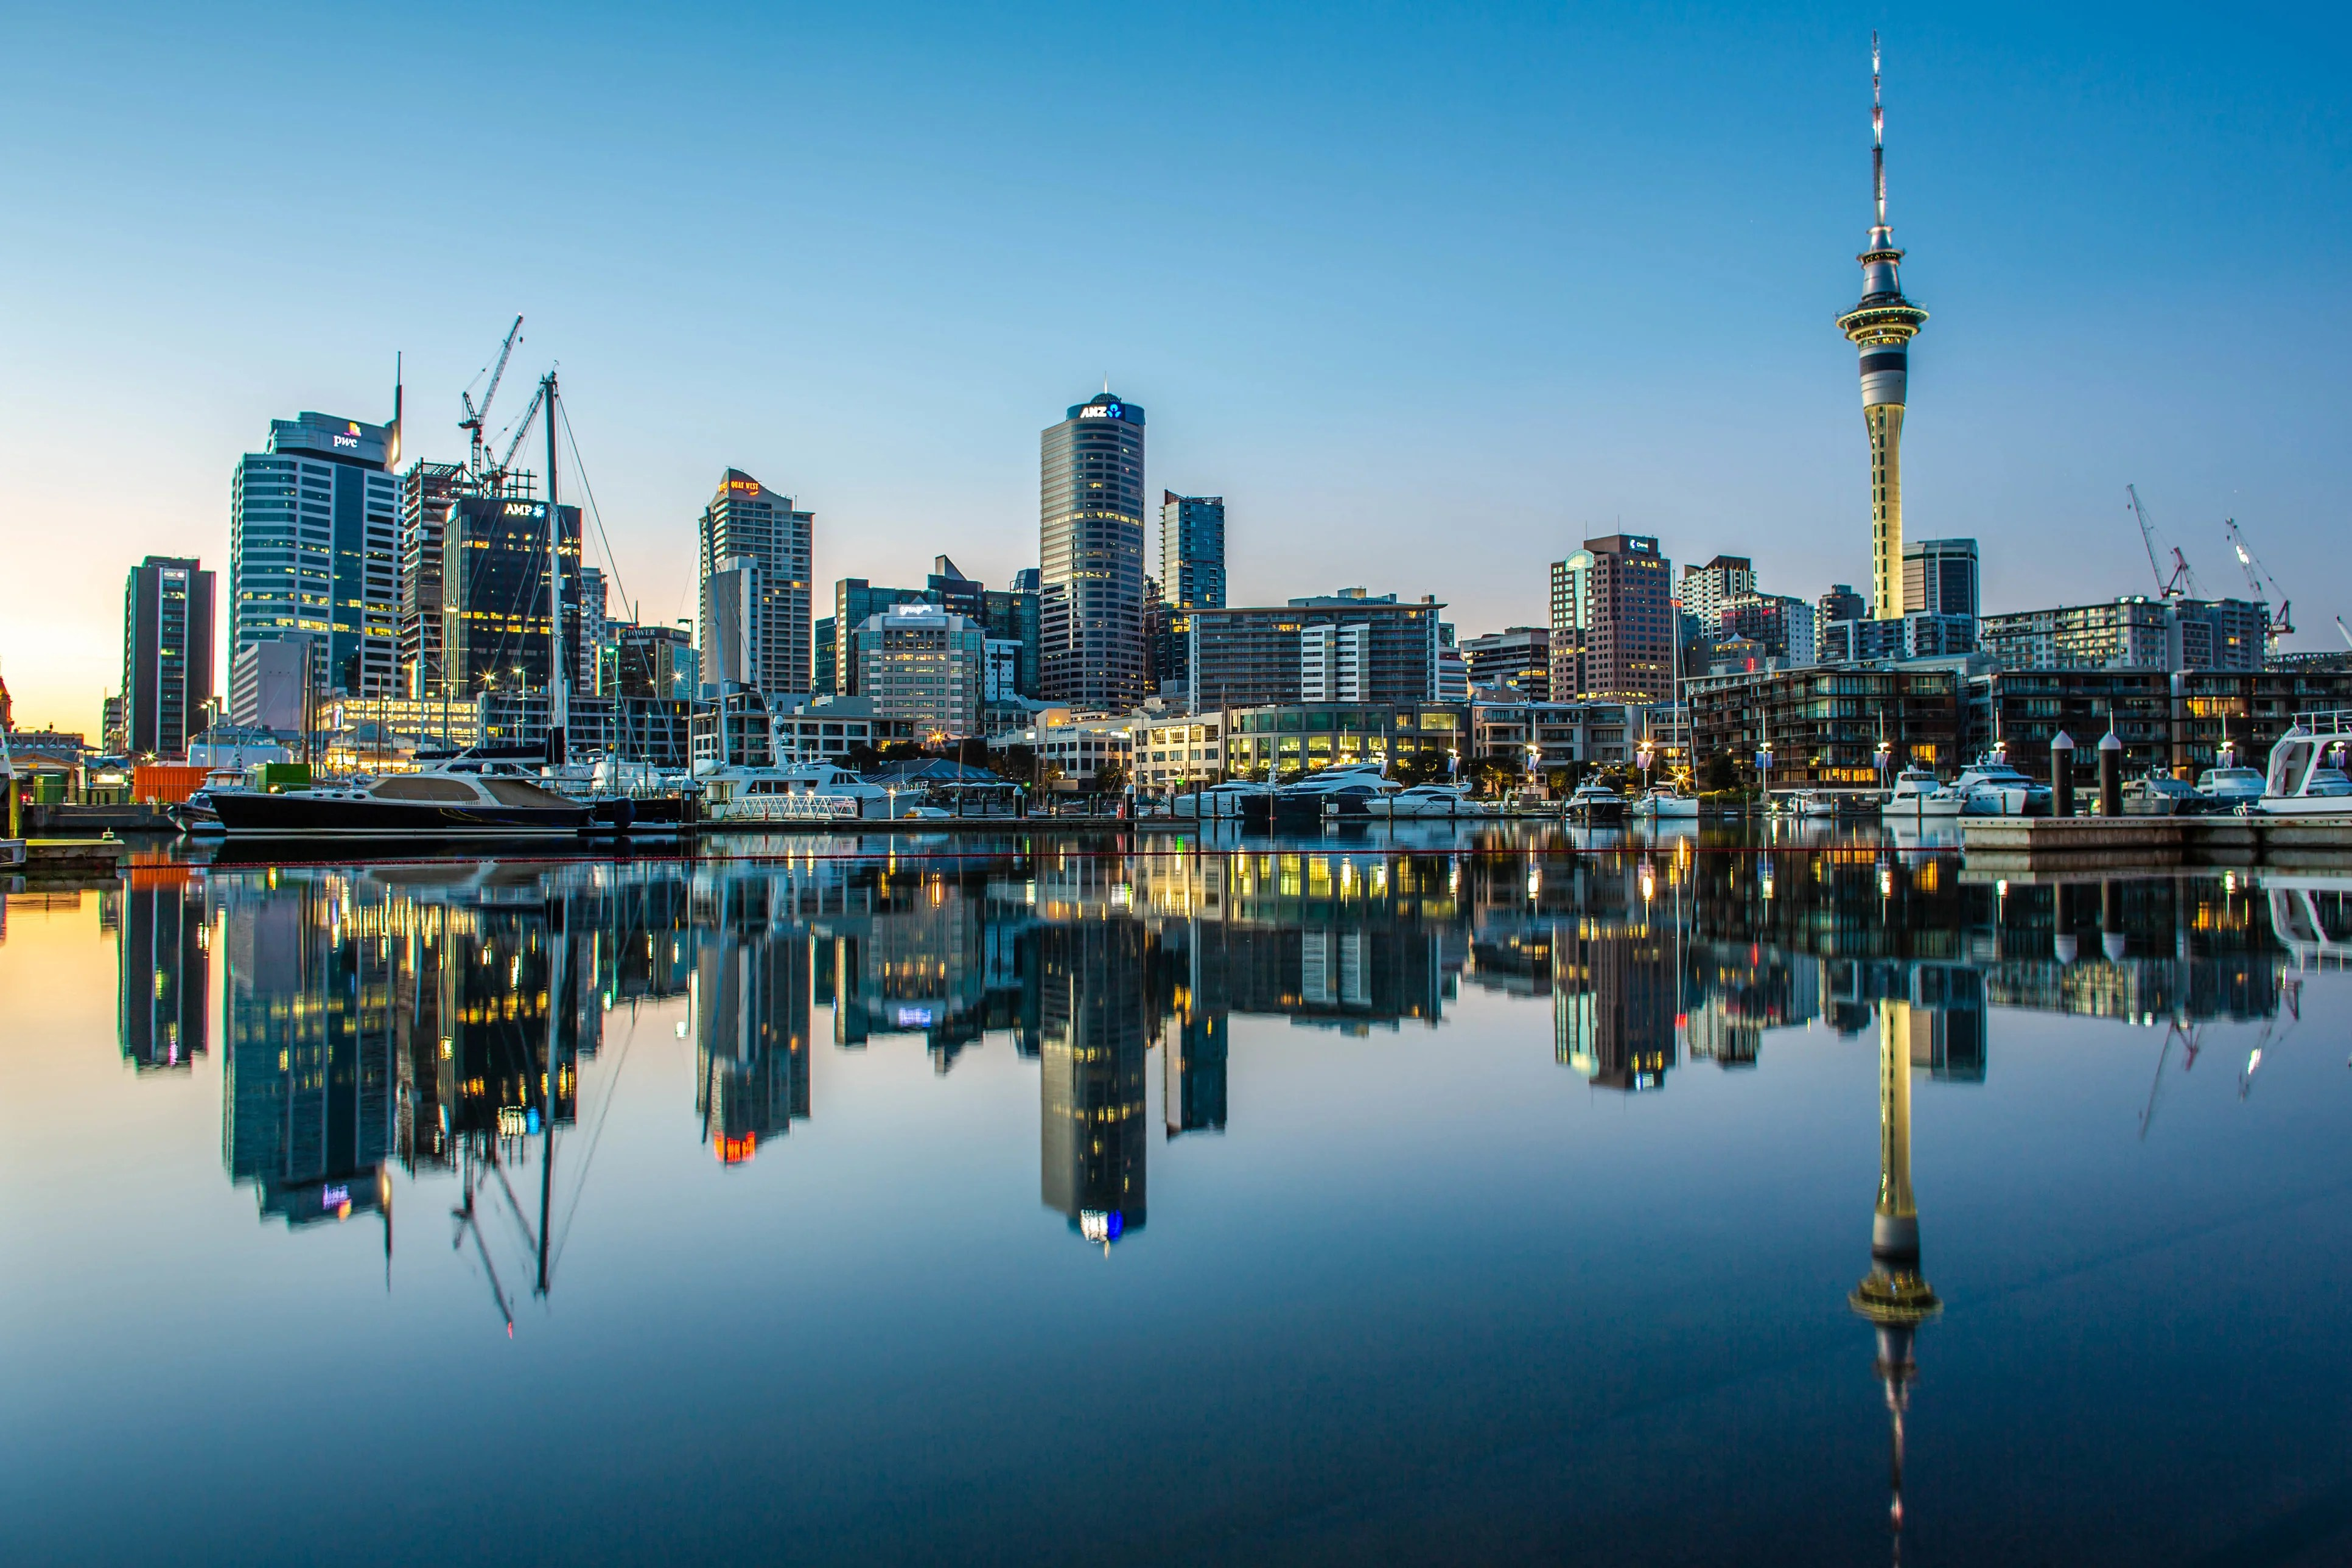 Going to New Zealand? Don't forget to get permission first